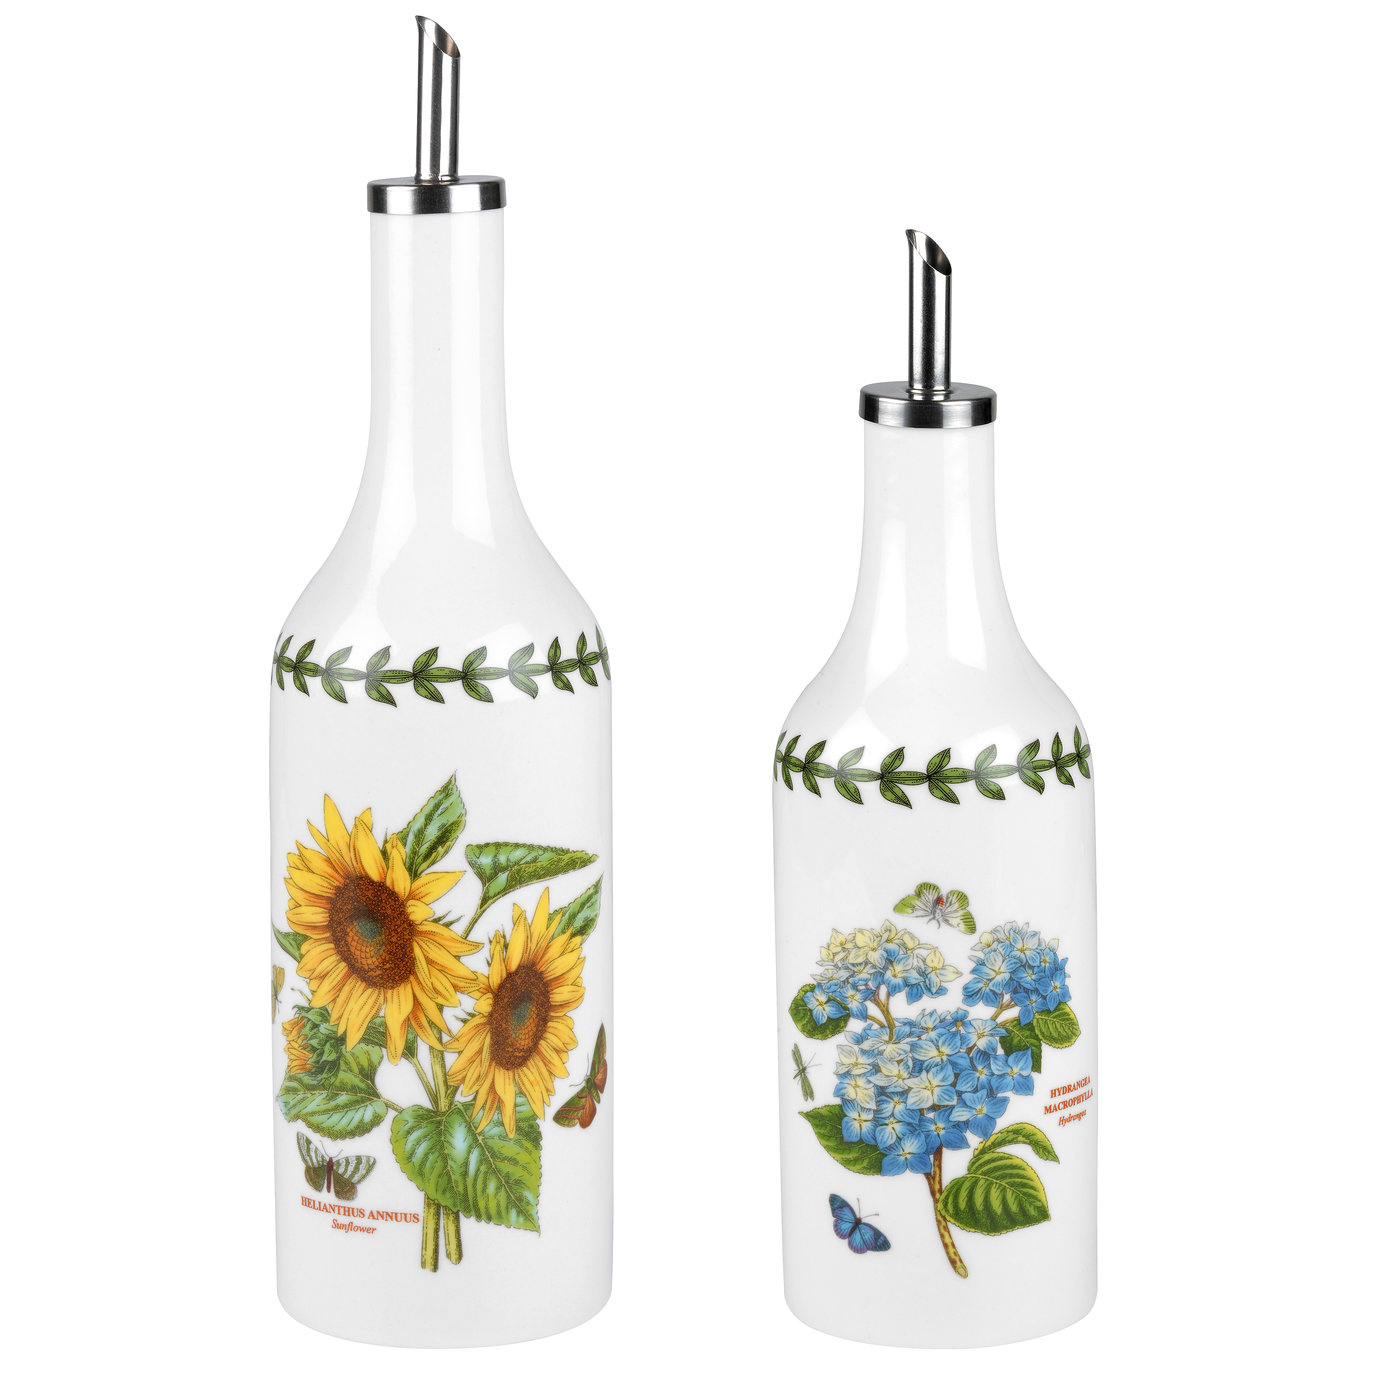 PORTMEIRION Botanic Garden Sunflower Oil and Vinegar Set